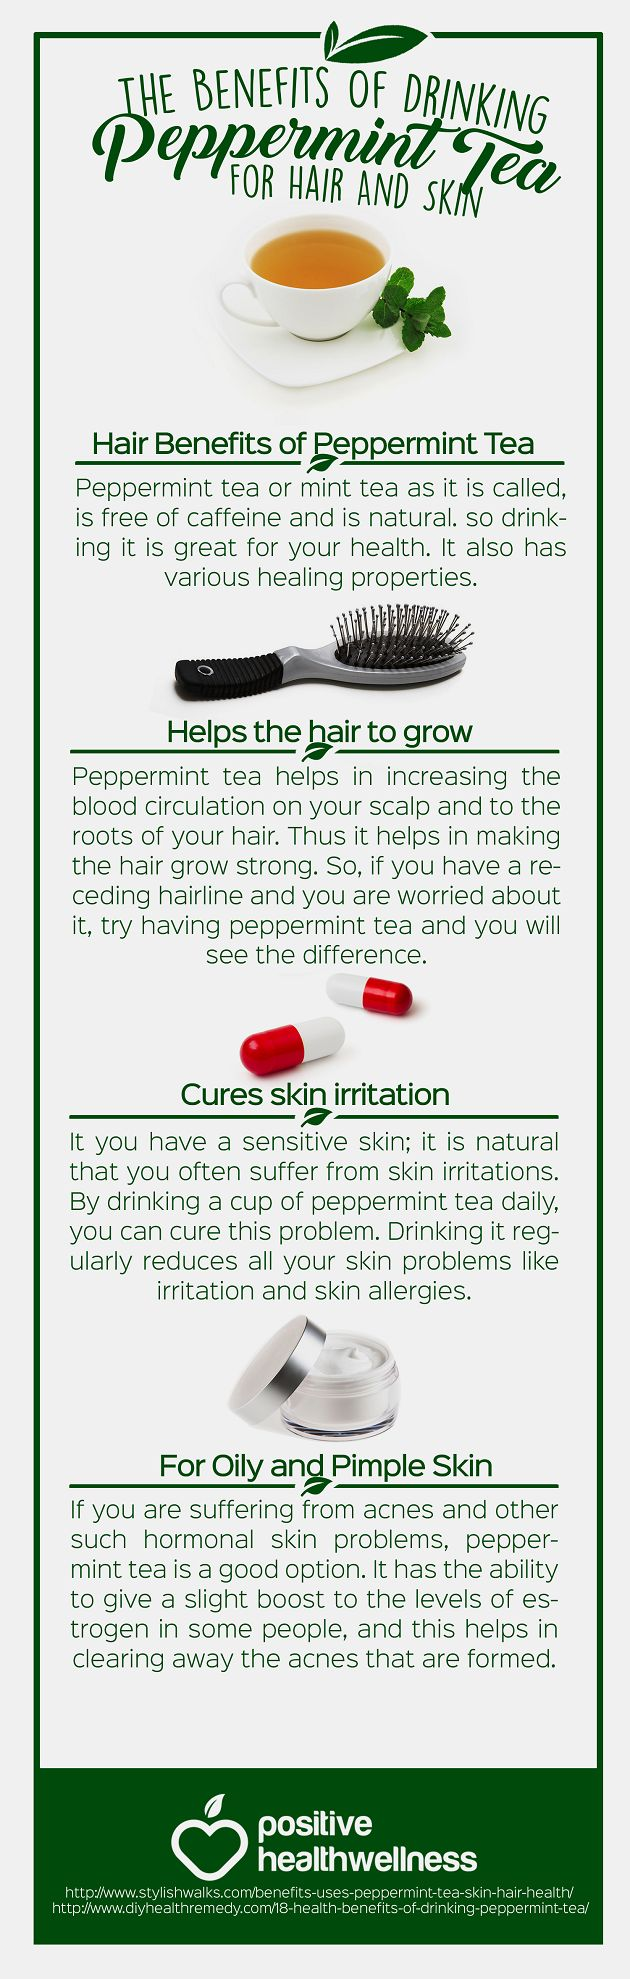 The Benefits Of Drinking Peppermint Tea For Hair And Skin – Positive Health Wellness Infographic